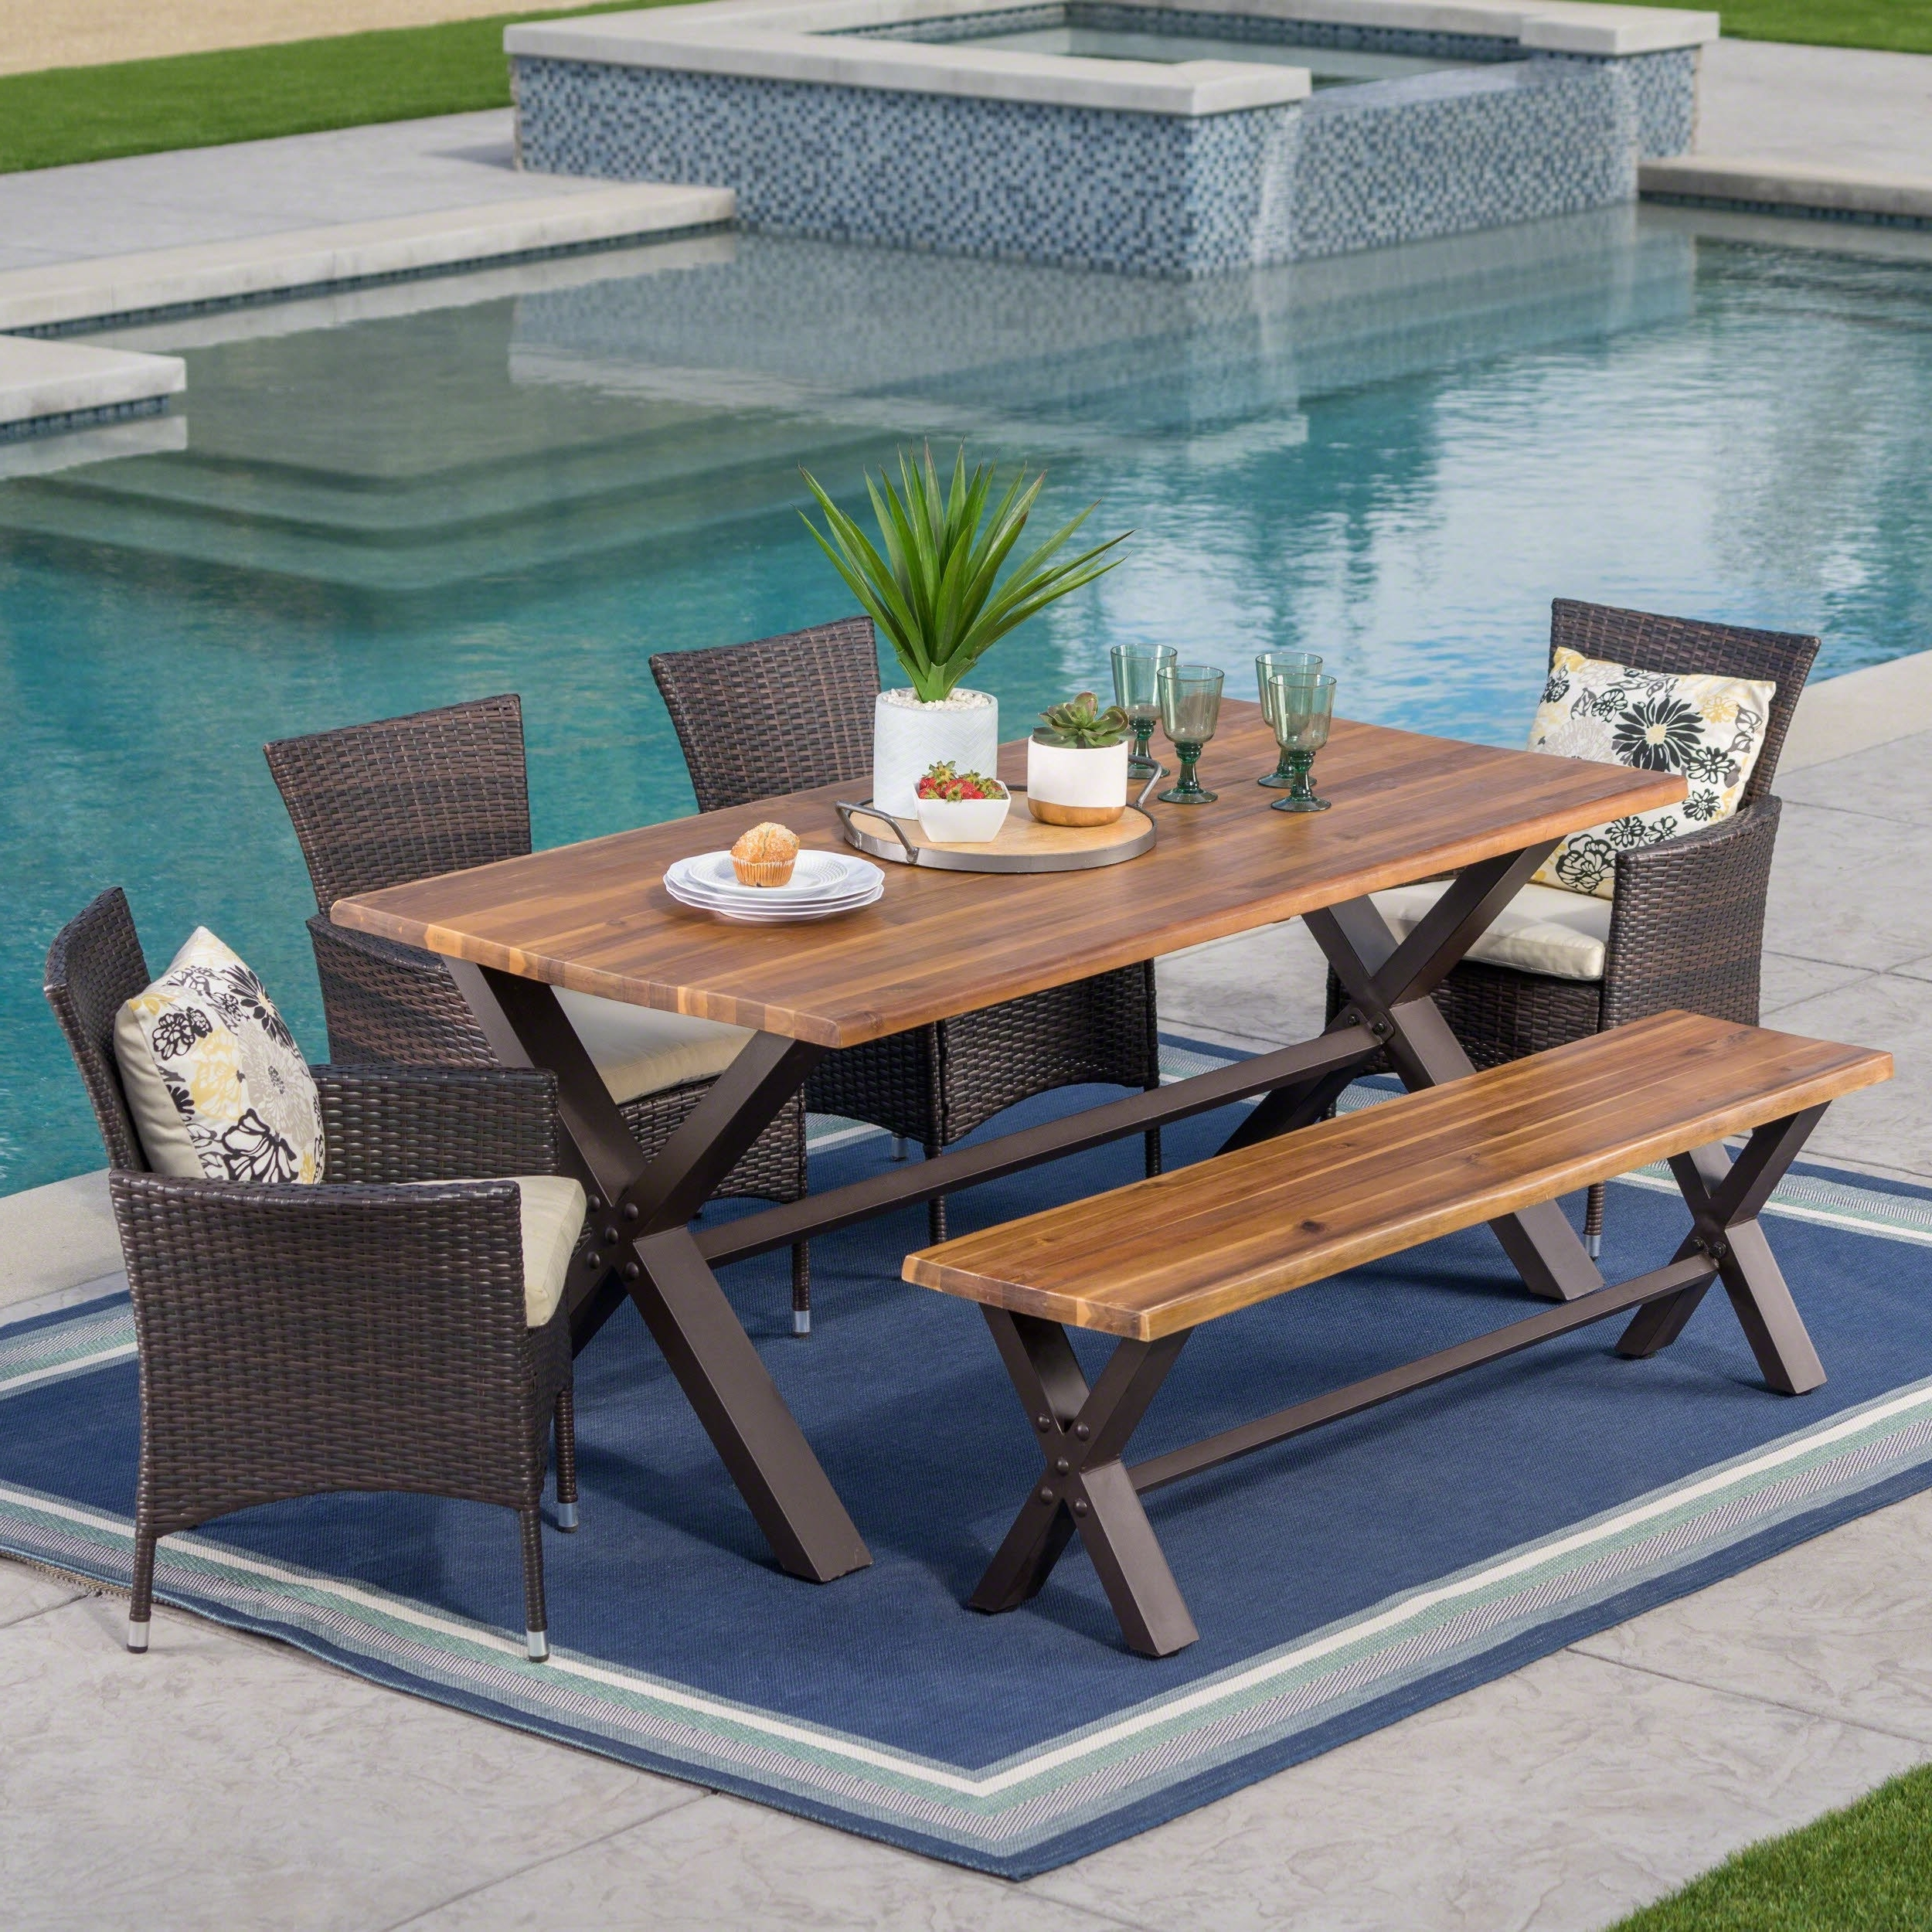 Buy Outdoor Dining Sets Online At Overstock (View 6 of 25)